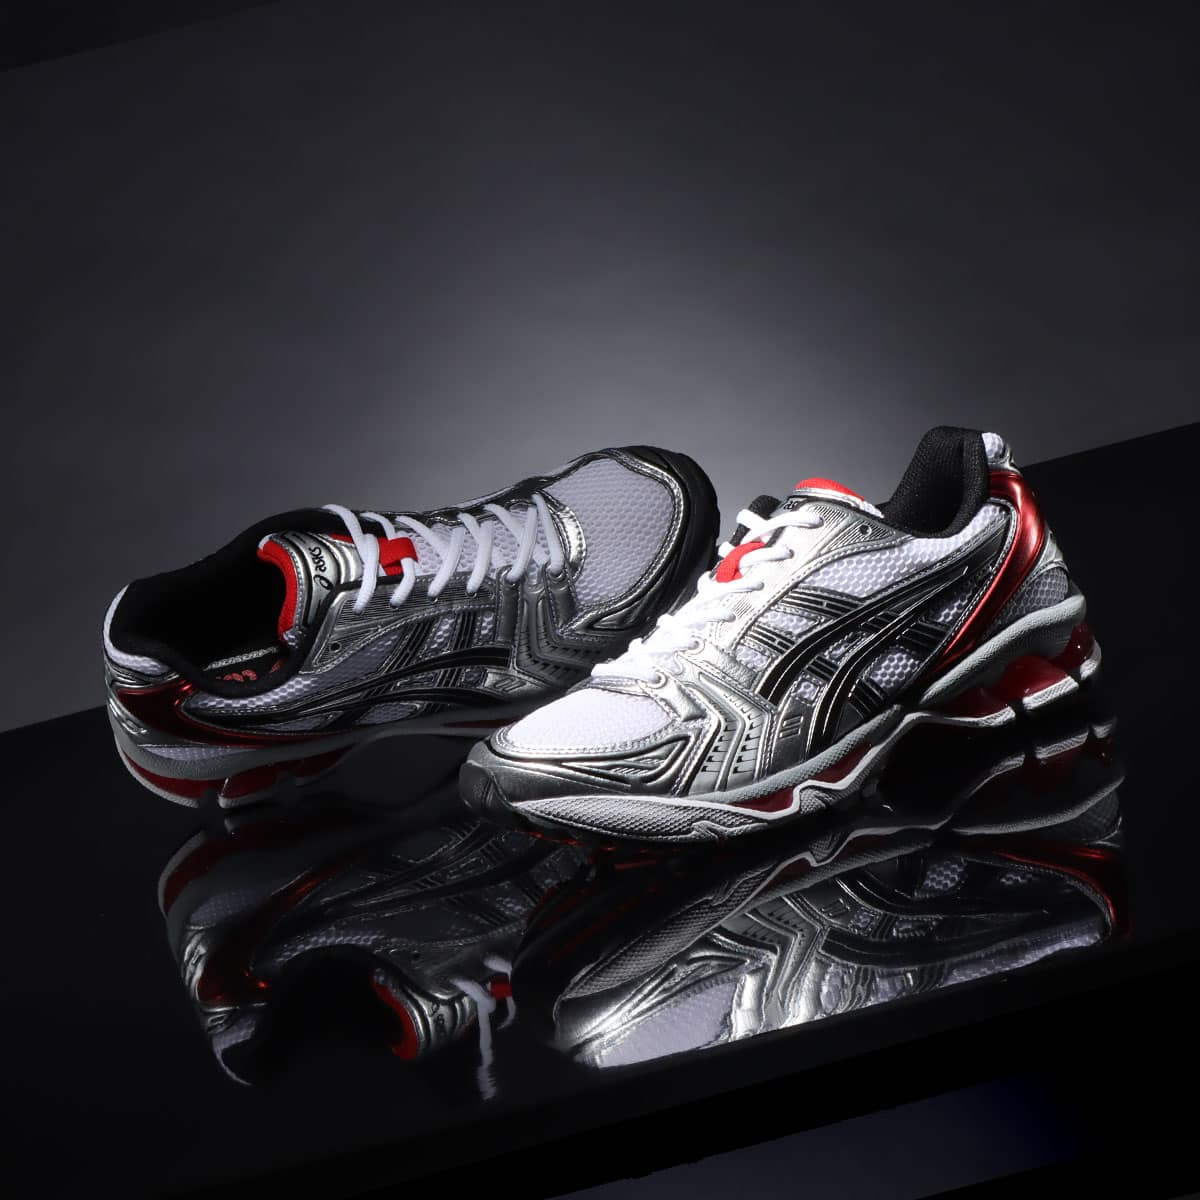 asics GEL-KAYANO 14 W/CLSR 21SS-S_photo_large